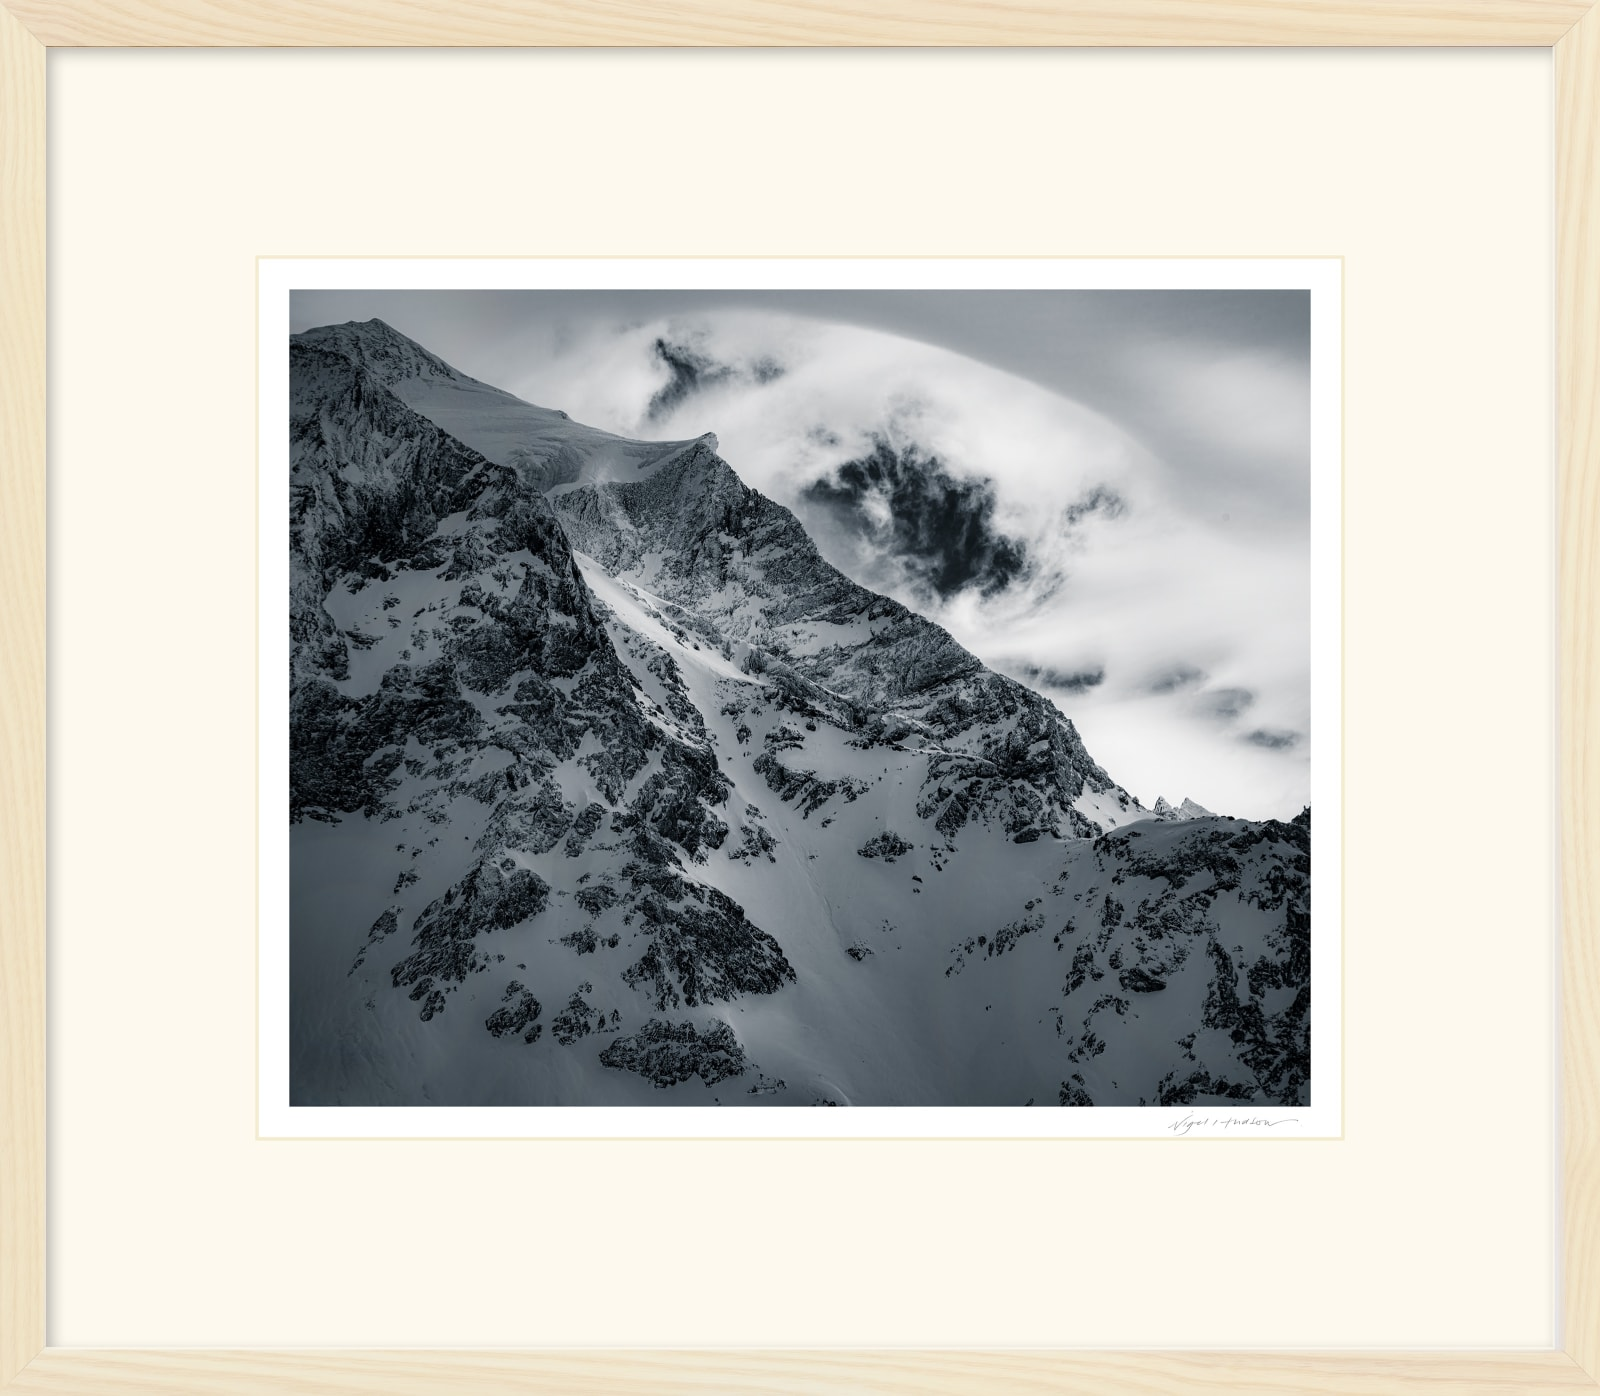 'RIDGE LIGHT' Archival Pigment Print on Platinum Etching Fine Art Paper. Framed in an Limed Ash Cushion Frame and protected with crystal clear Water White Glass. Available in an edition of 3 in three sizes. Prices from £245.00 including first class courier delivery within five working days.